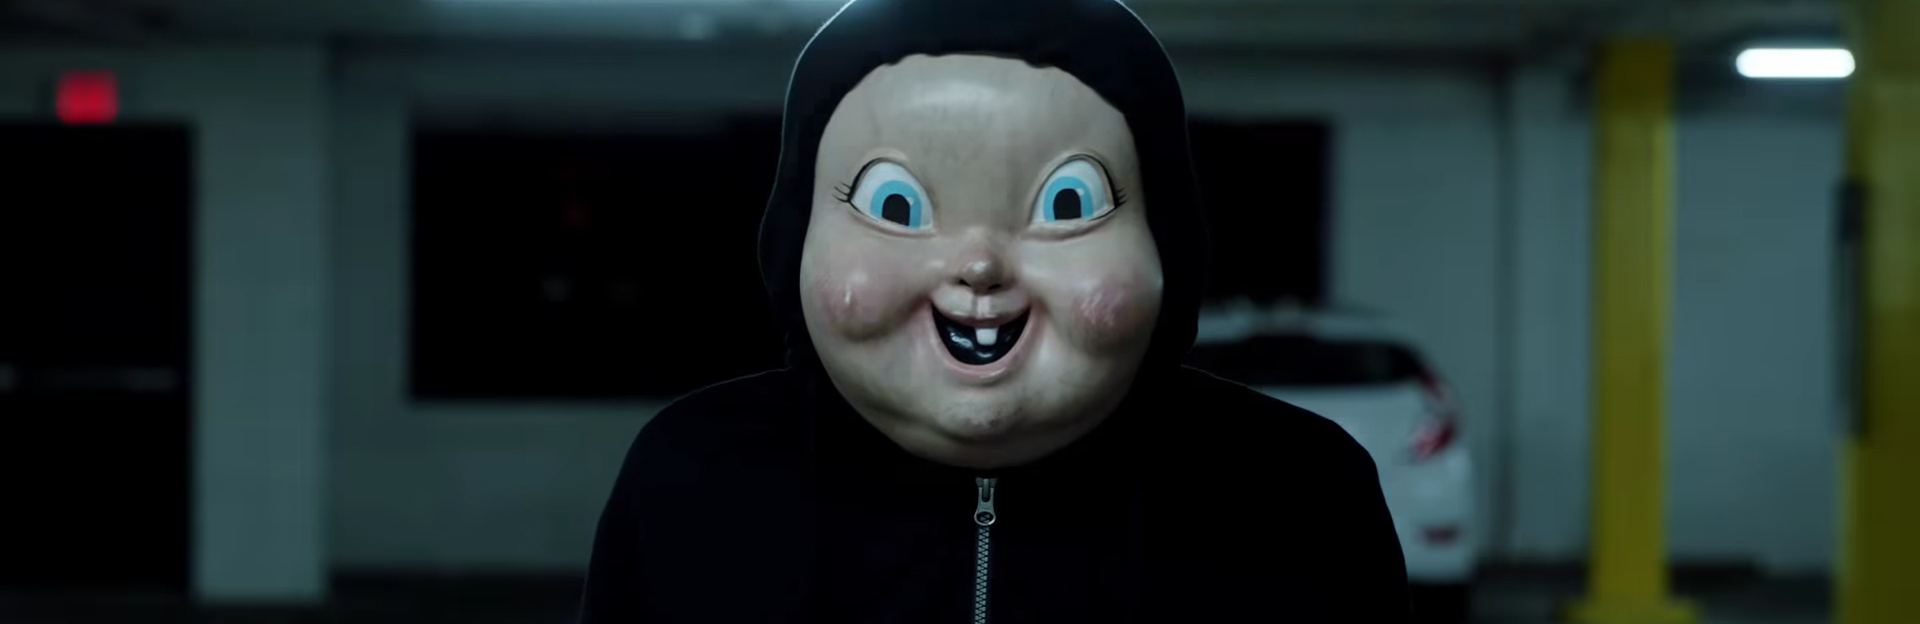 Happy Death Day. Image Credit: Blumhouse/Universal.